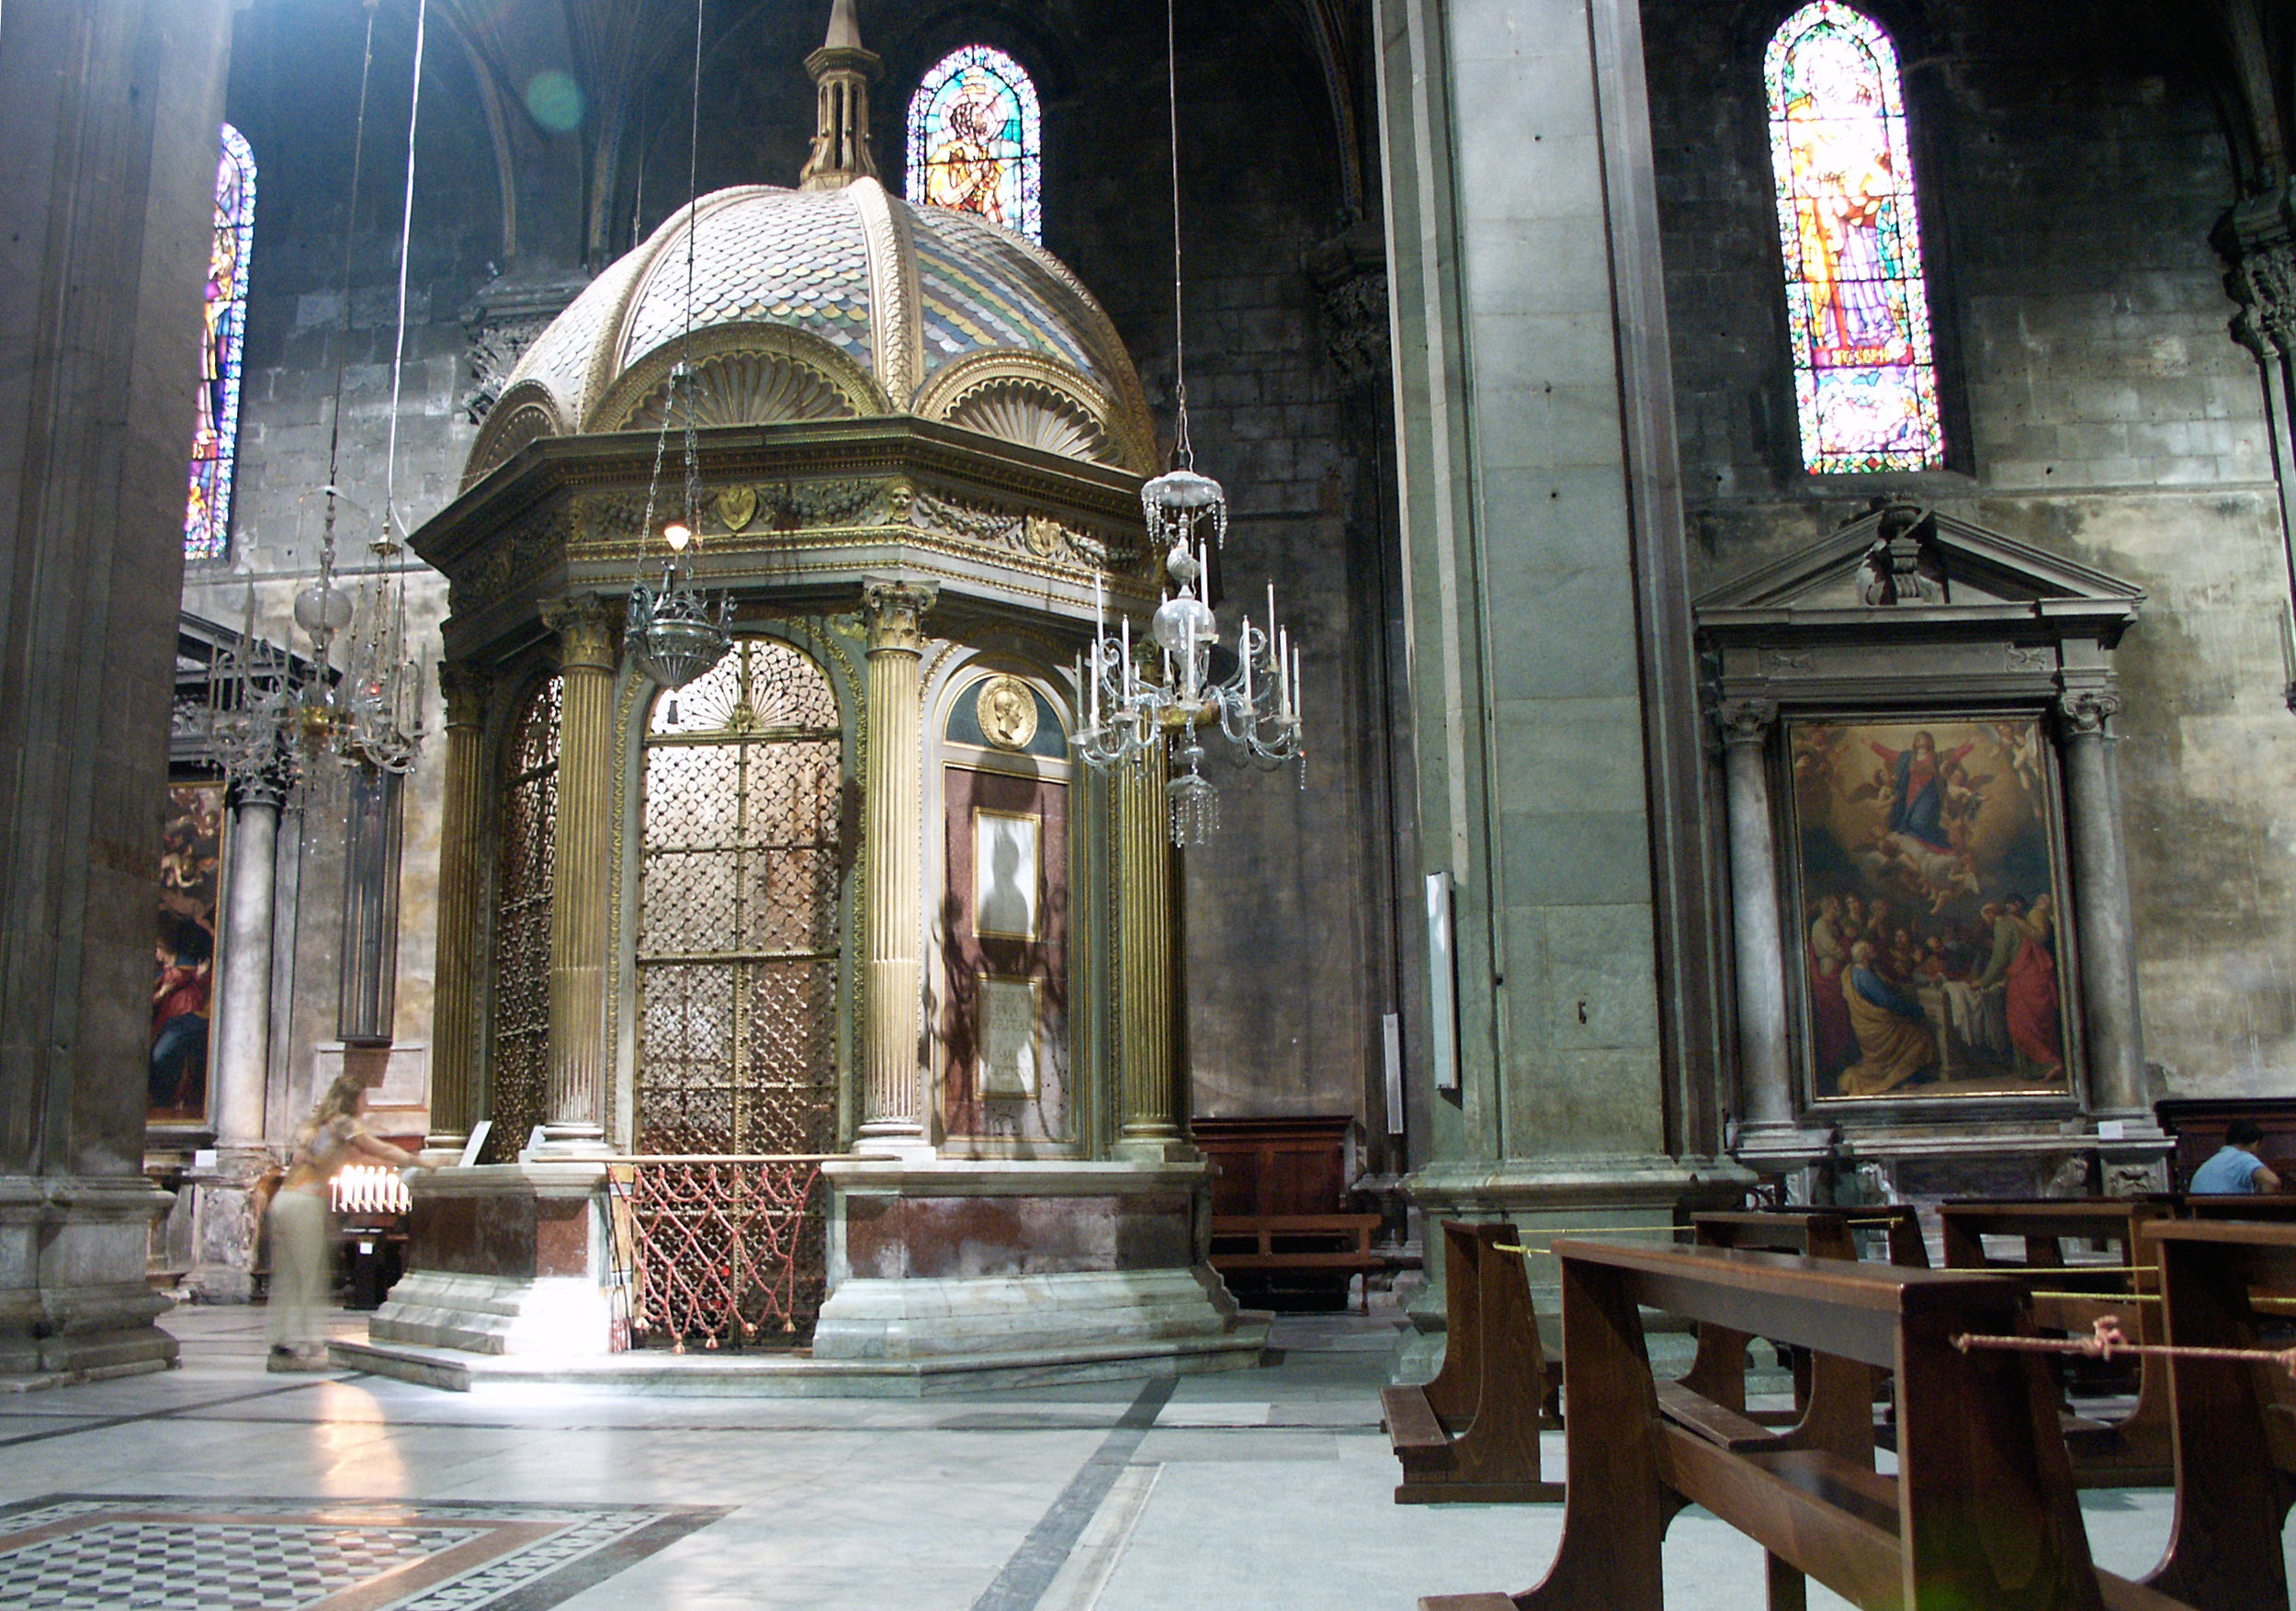 https://upload.wikimedia.org/wikipedia/commons/f/f3/Lucques-Cathedrale-Le_tempietto.jpg